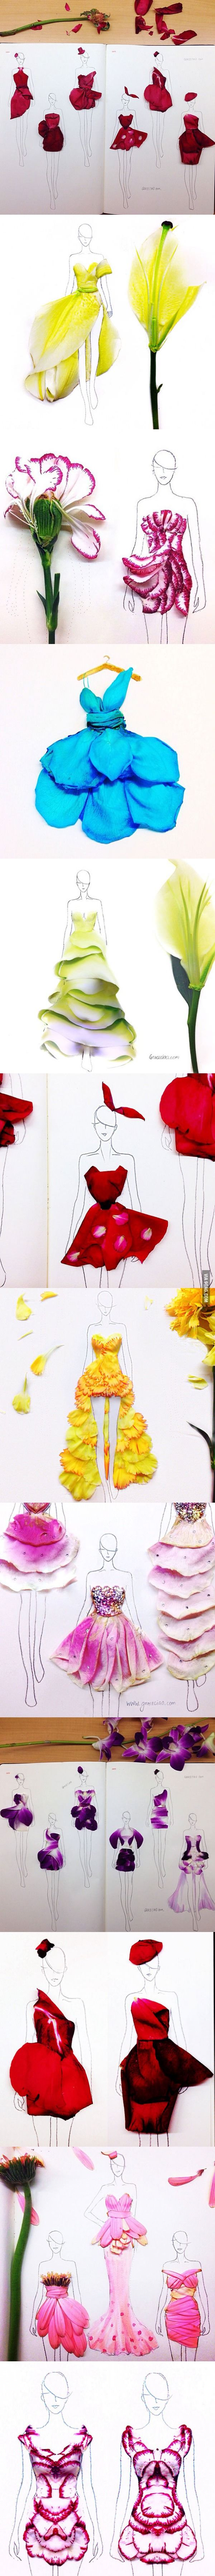 Clever Fashion Illustrations With Real Flower Petals As Clothing. sketchbook assignment